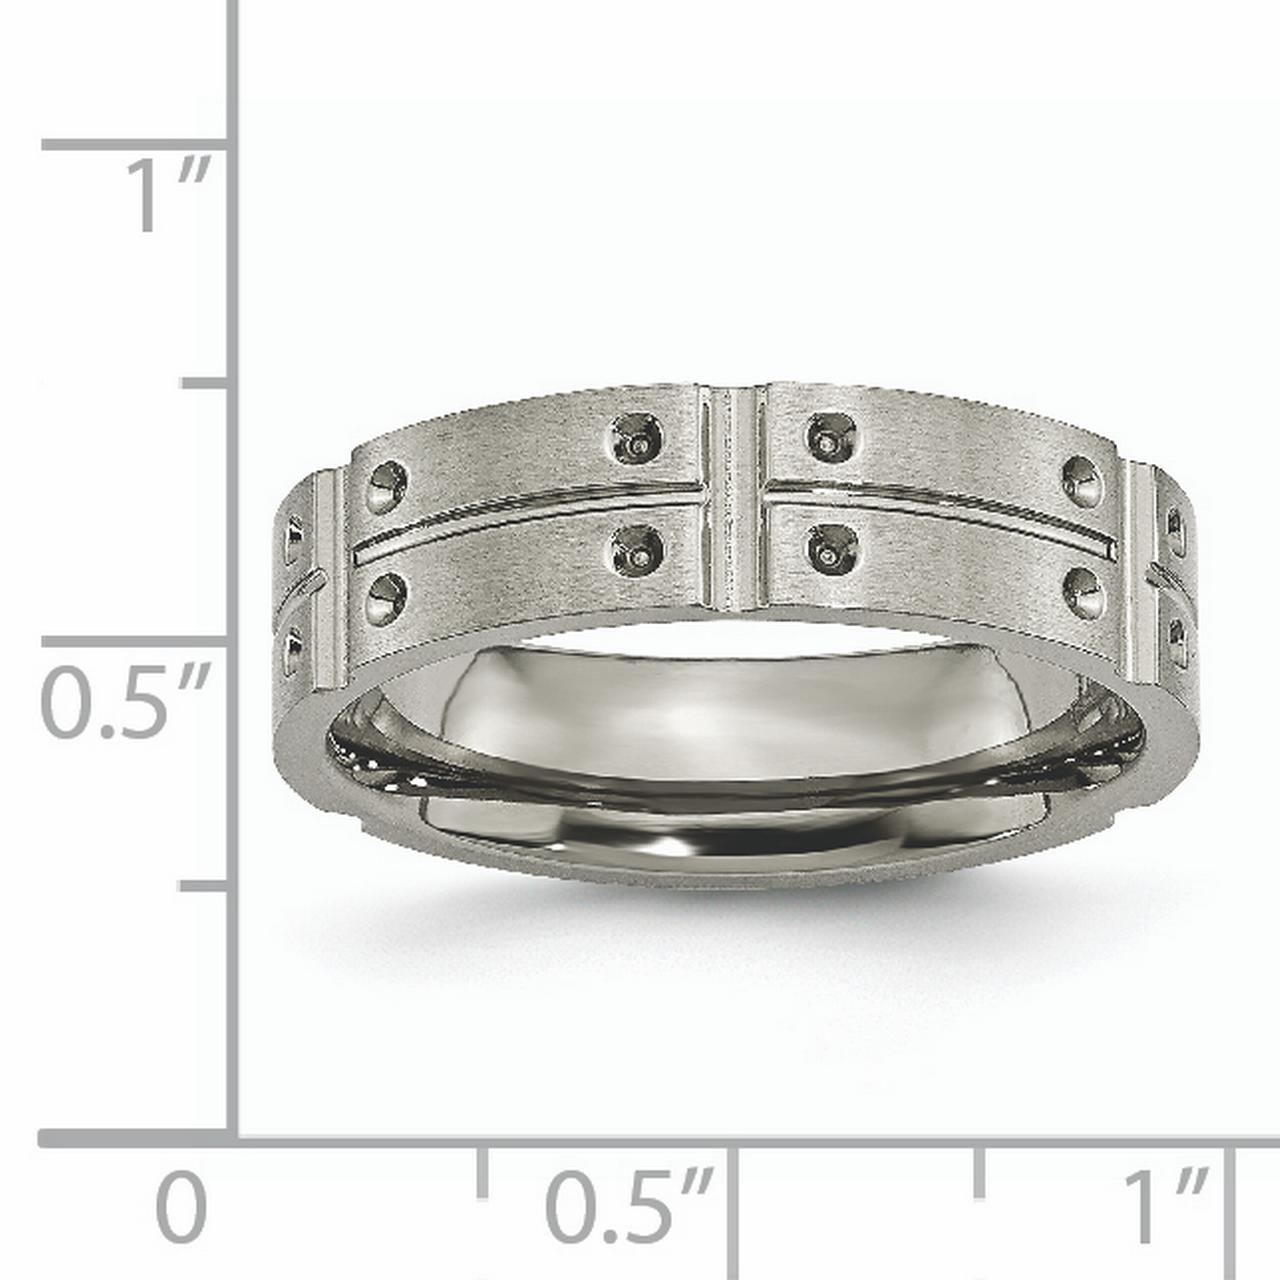 Titanium 6mm Brushed Wedding Ring Band Size 12.50 Fancy Fashion Jewelry Gifts For Women For Her - image 2 de 10